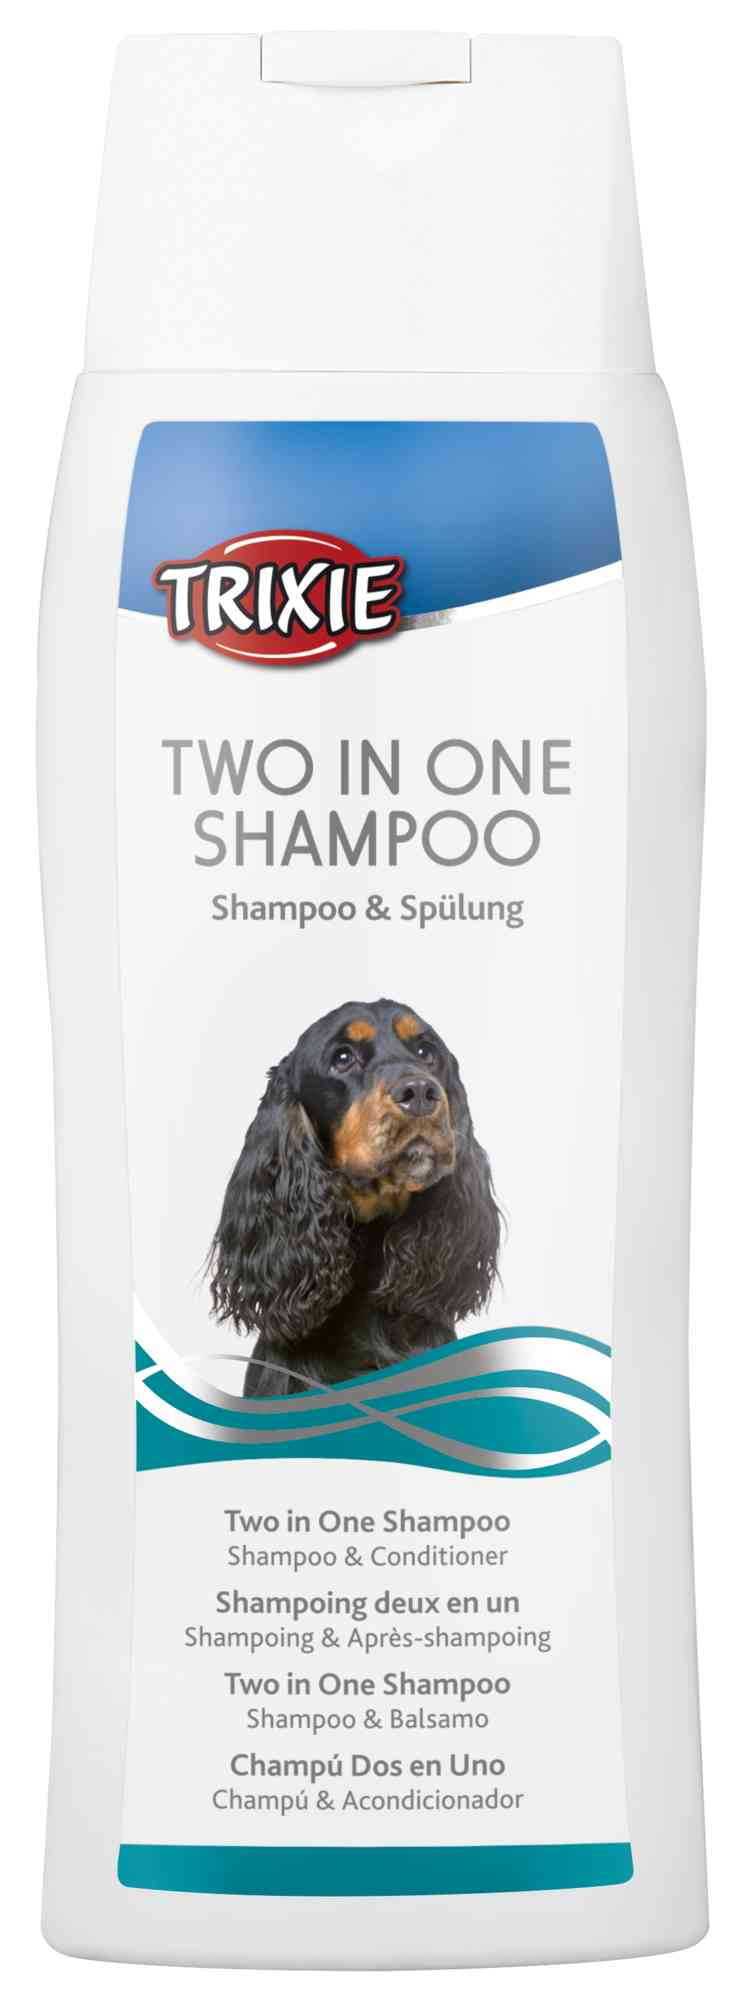 Trixie Shampoo 2 in 1 250 ml